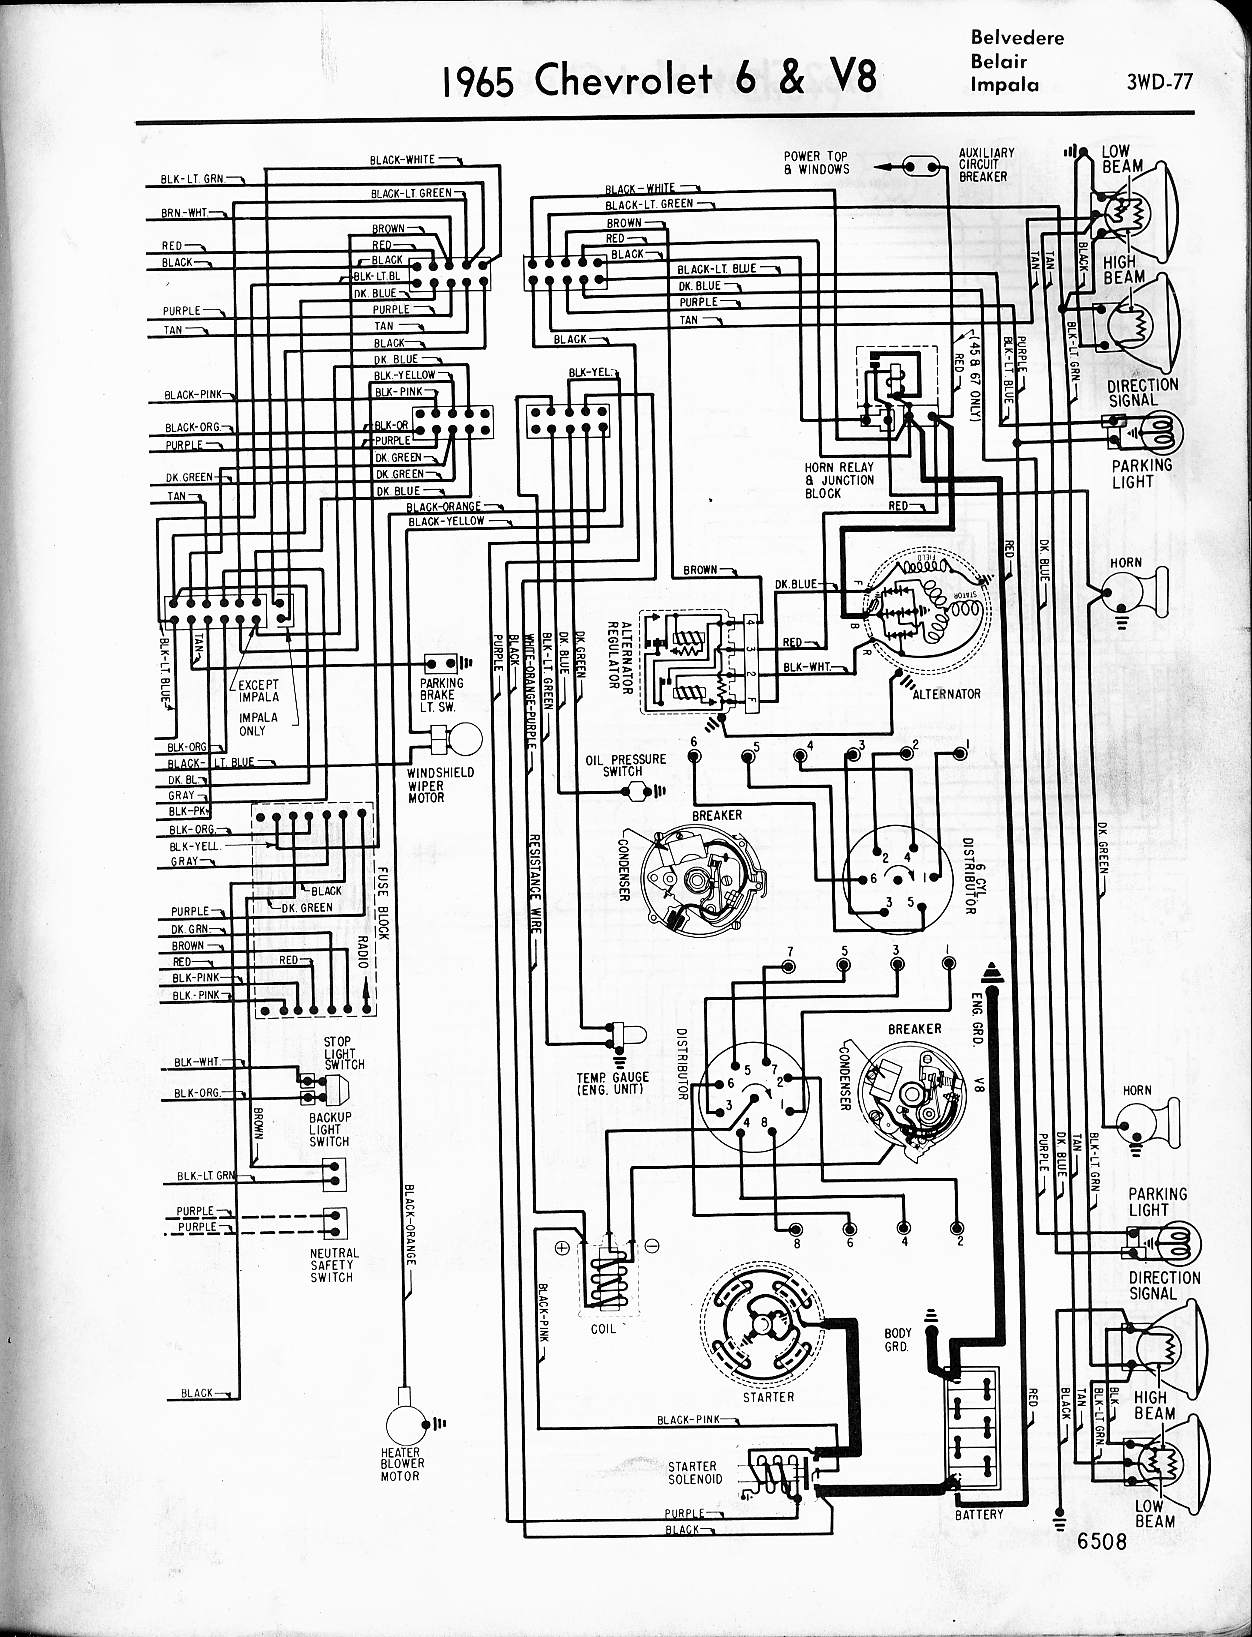 1969 Gto Wiring Diagram Schematic Library 68 Mustang Harness 1965 Chevelle Data Schema 65